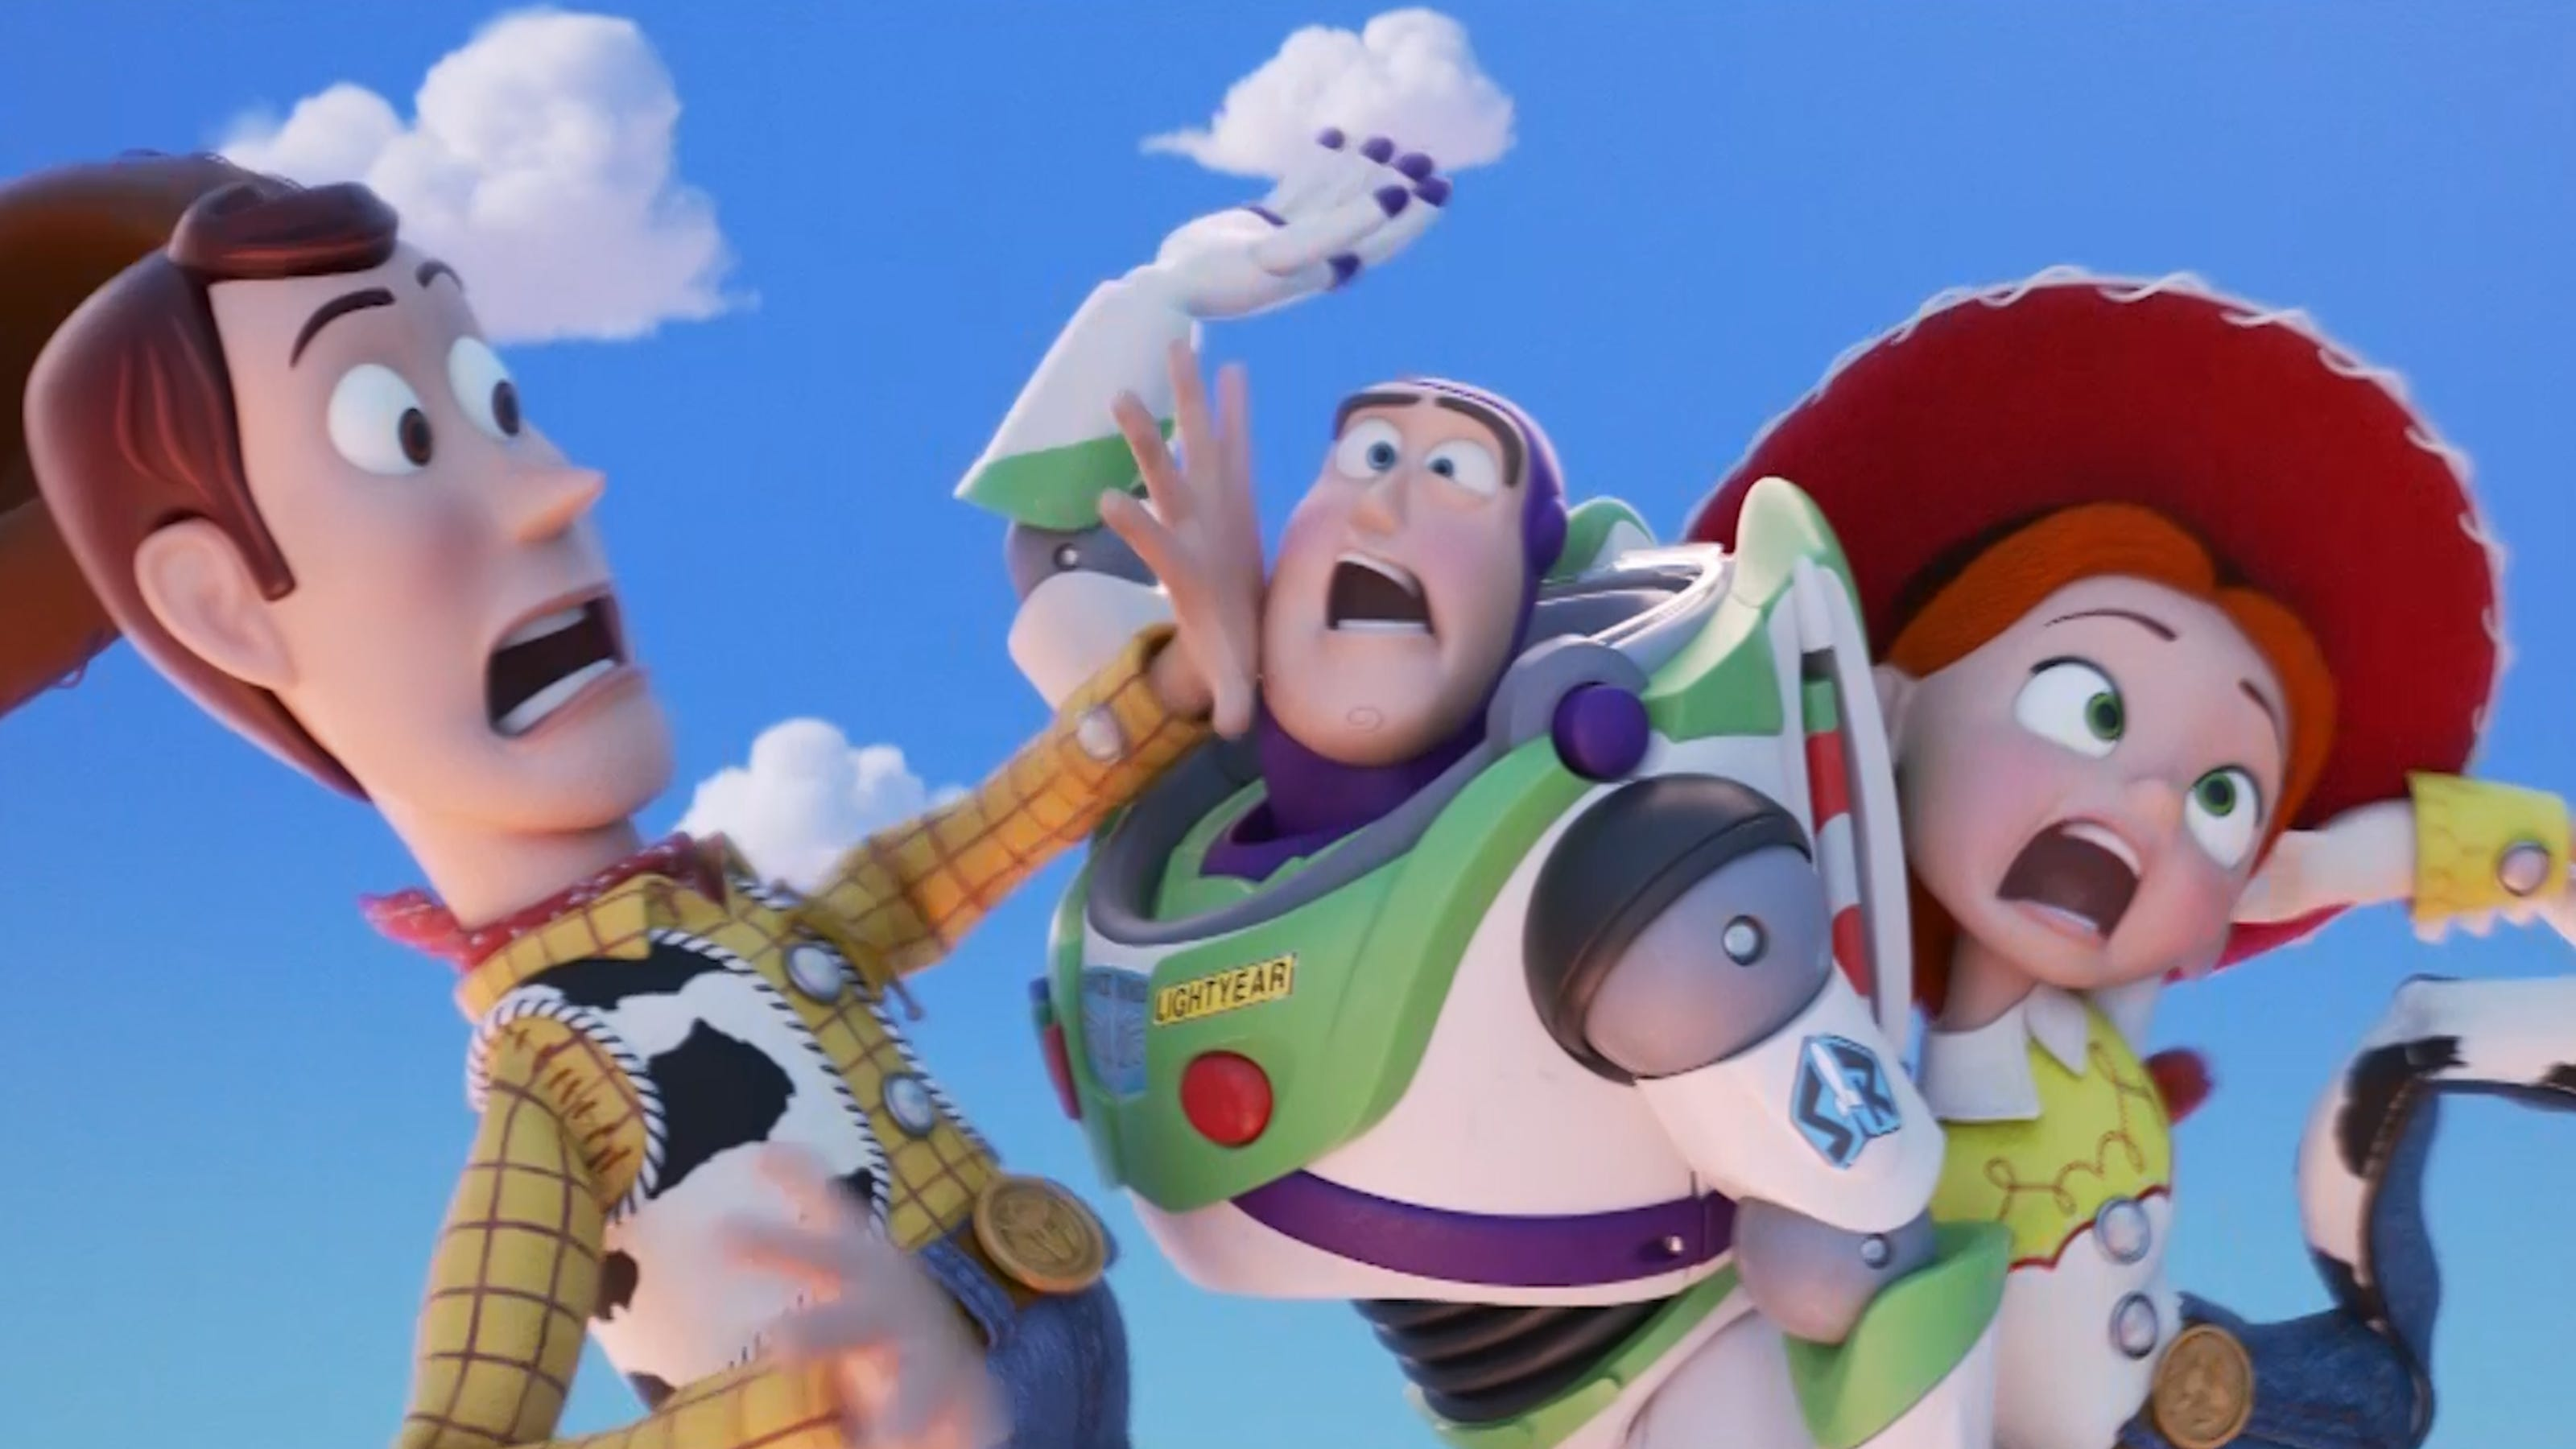 U0026#39;Toy Story 4u0026#39; Trailer Introduces A New Character